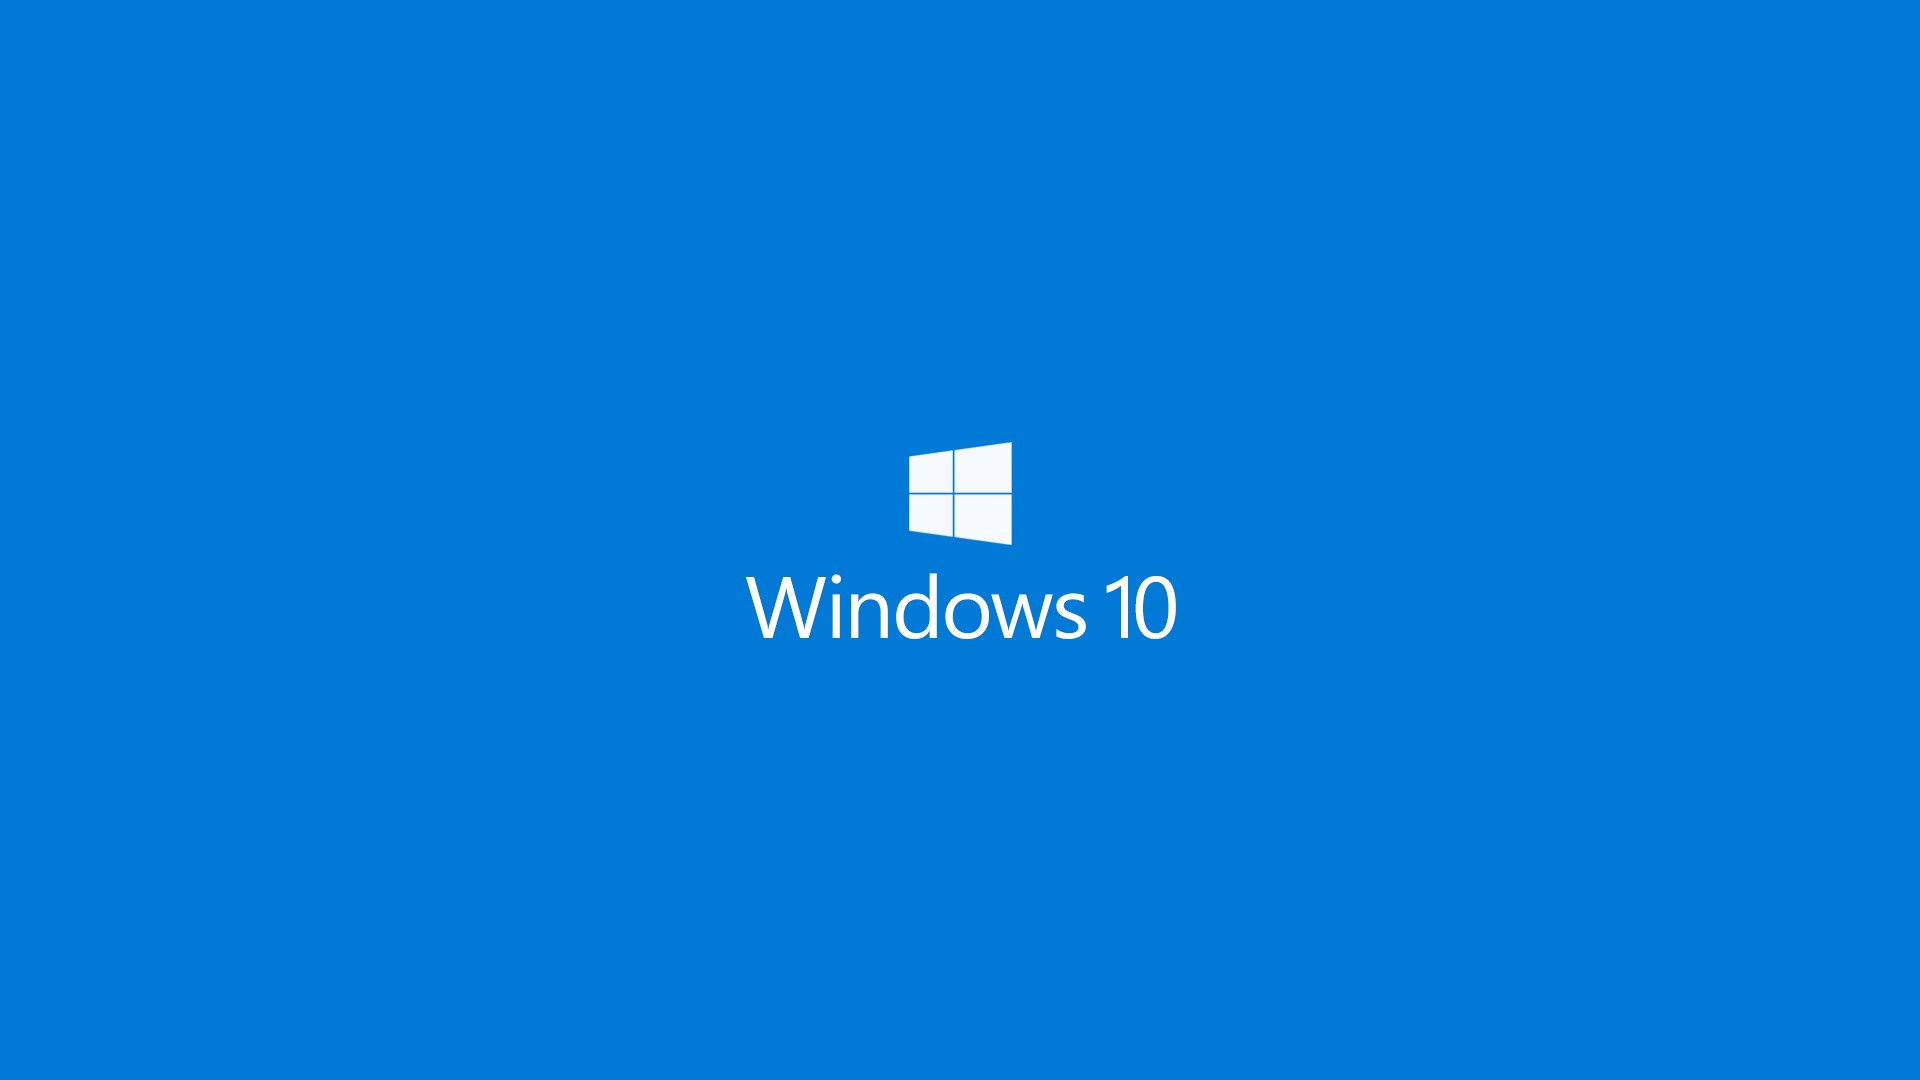 How to Check Genuine or Pirated Windows 10